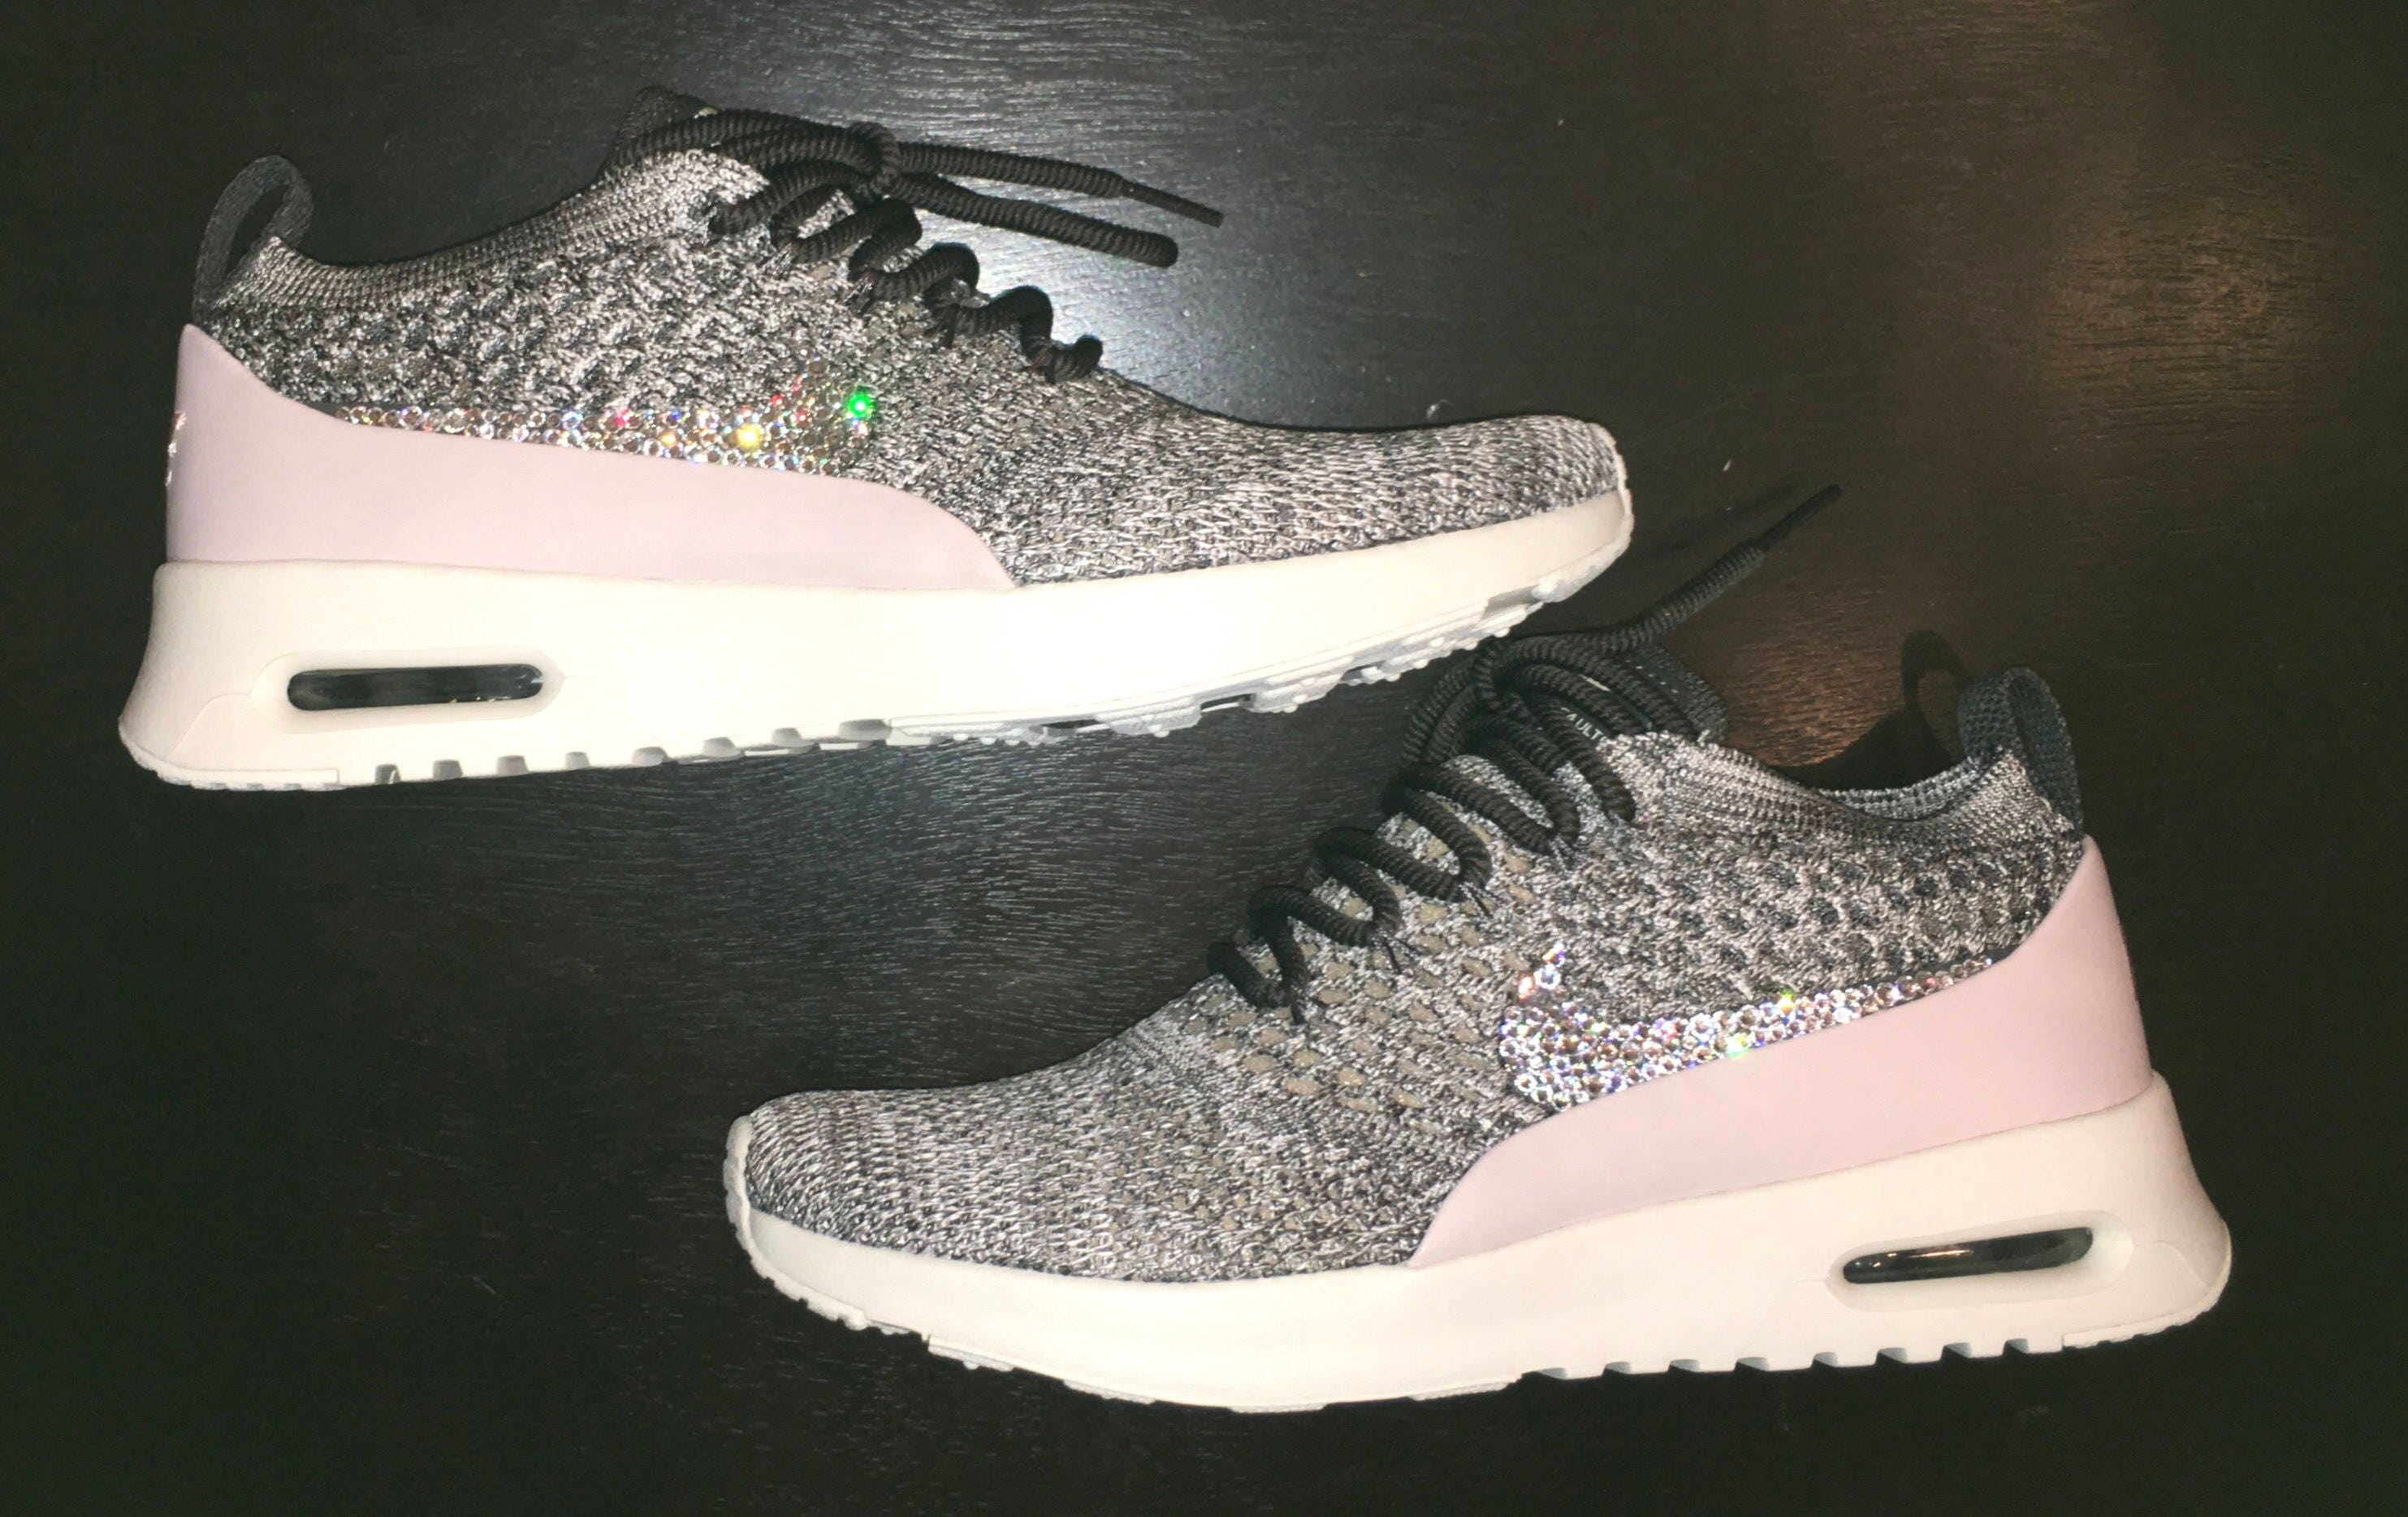 crystal Nike Air Max Thea Flyknit Bling Shoes with Swarovski  6a57288c0